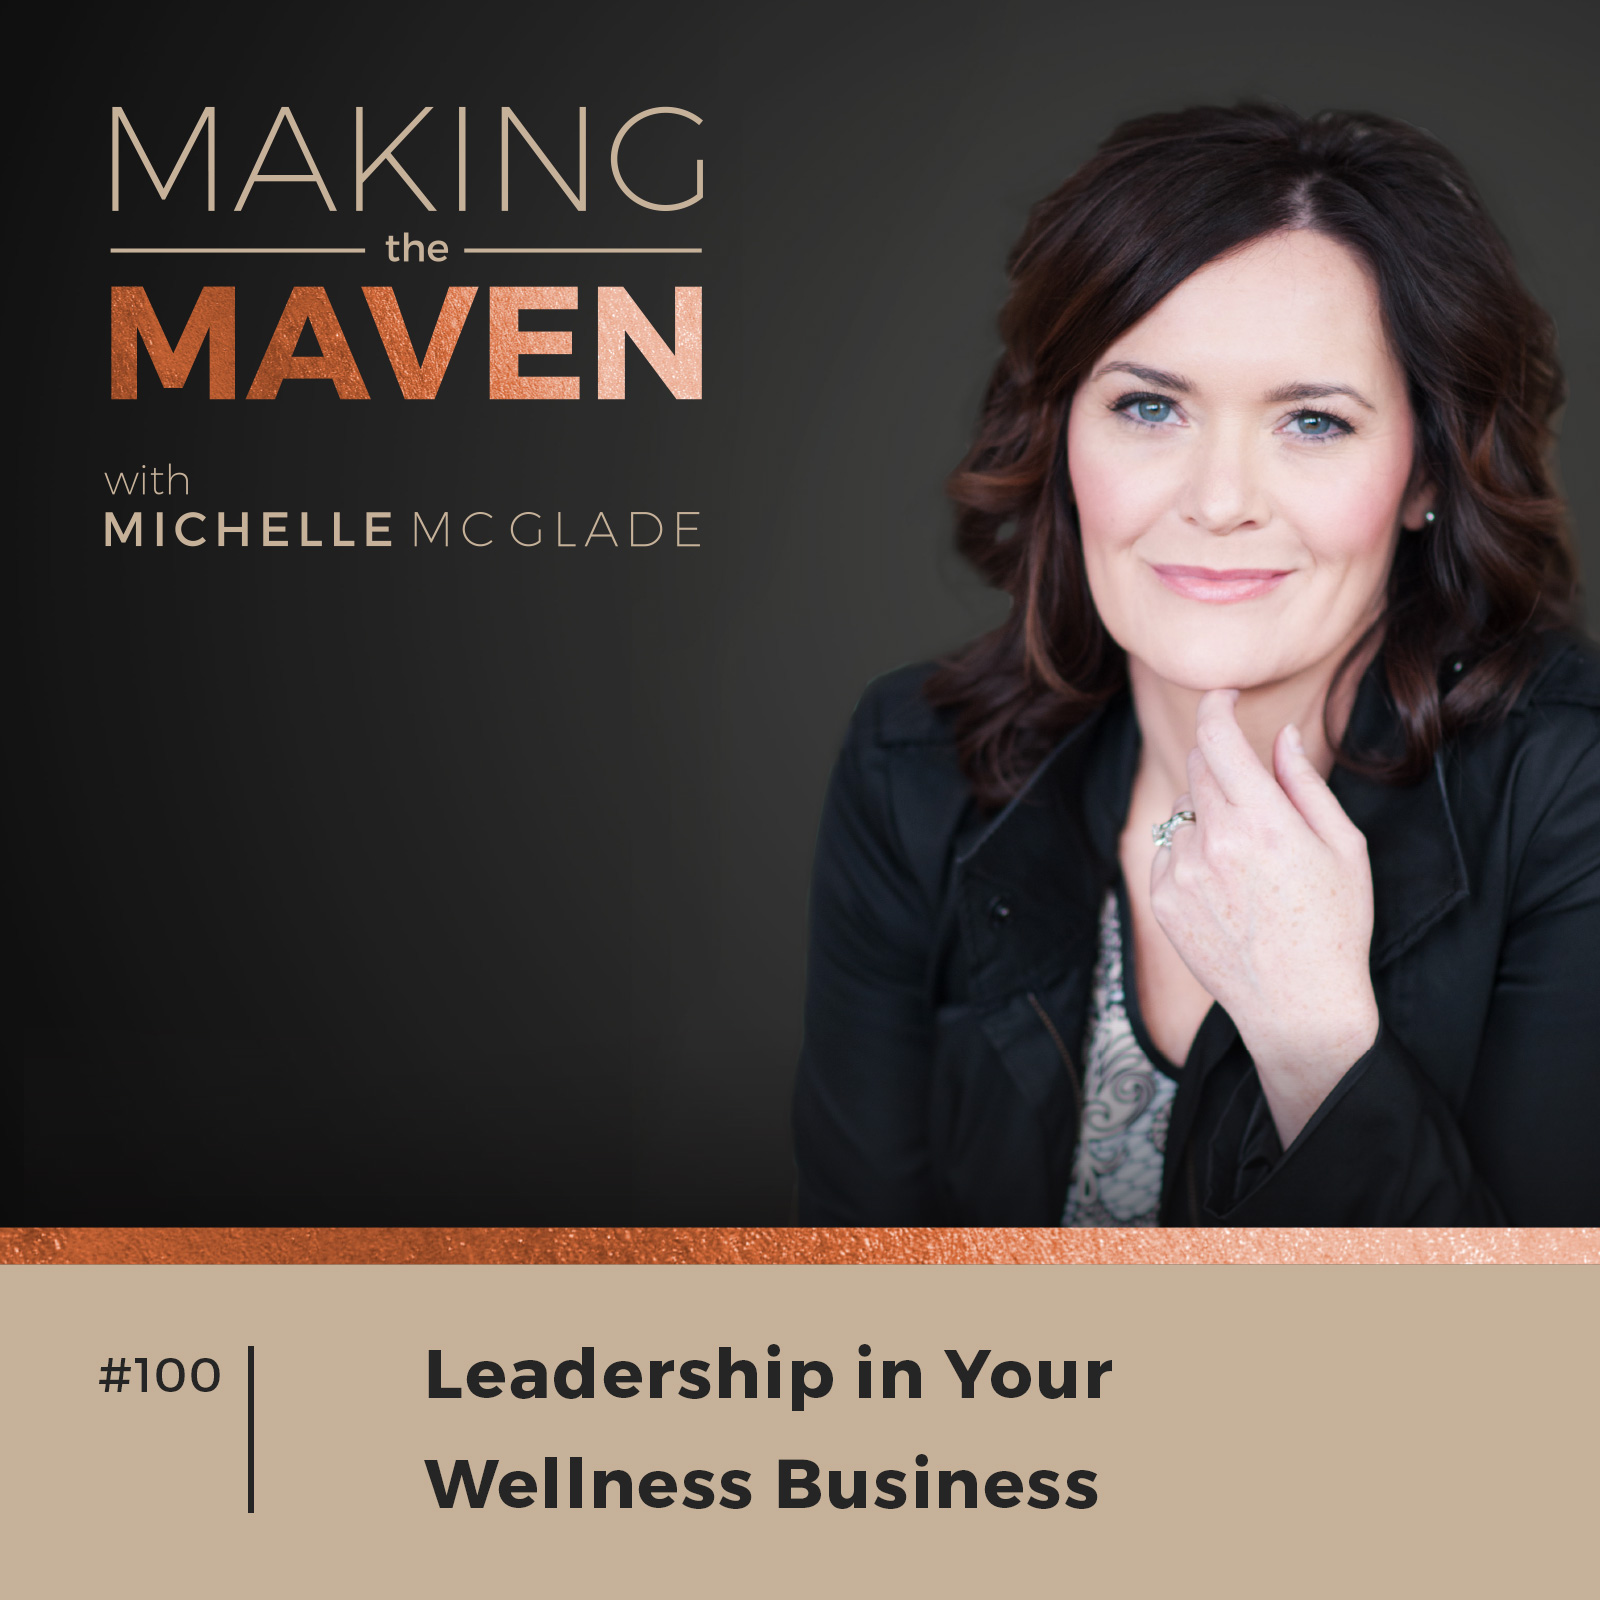 Leadership in Your Wellness Business